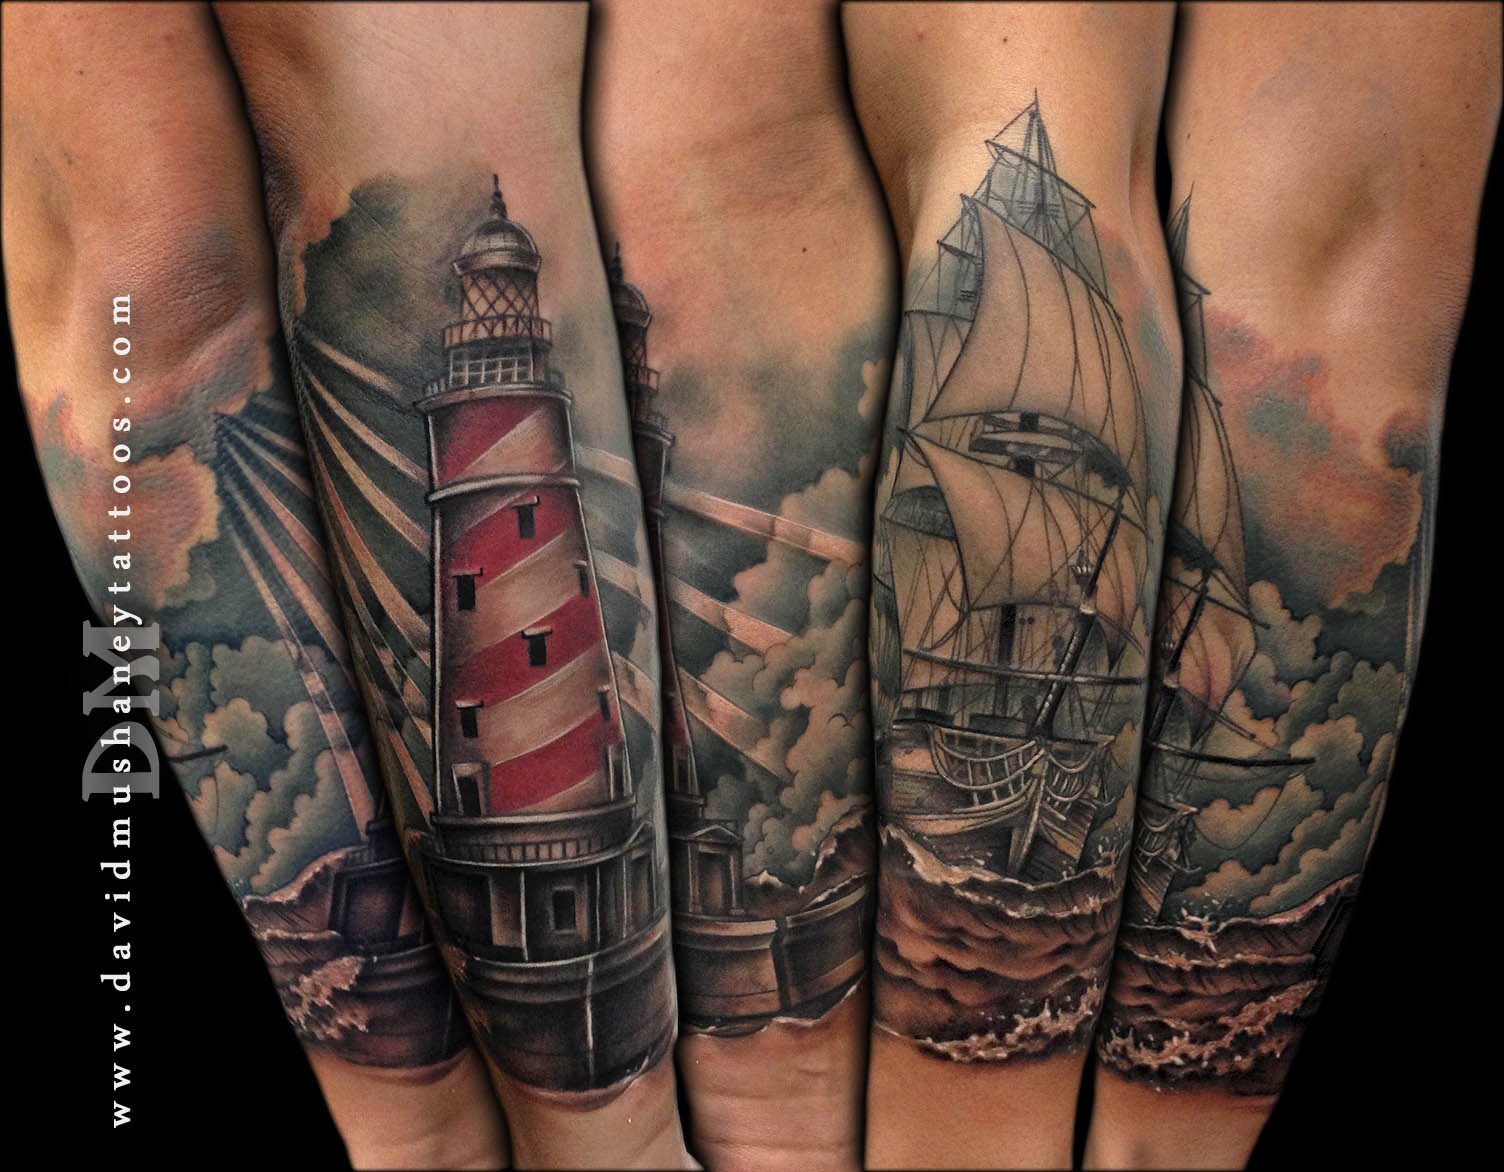 Ship and Lighthouse Half-sleeve Tattoo by David Mushaney